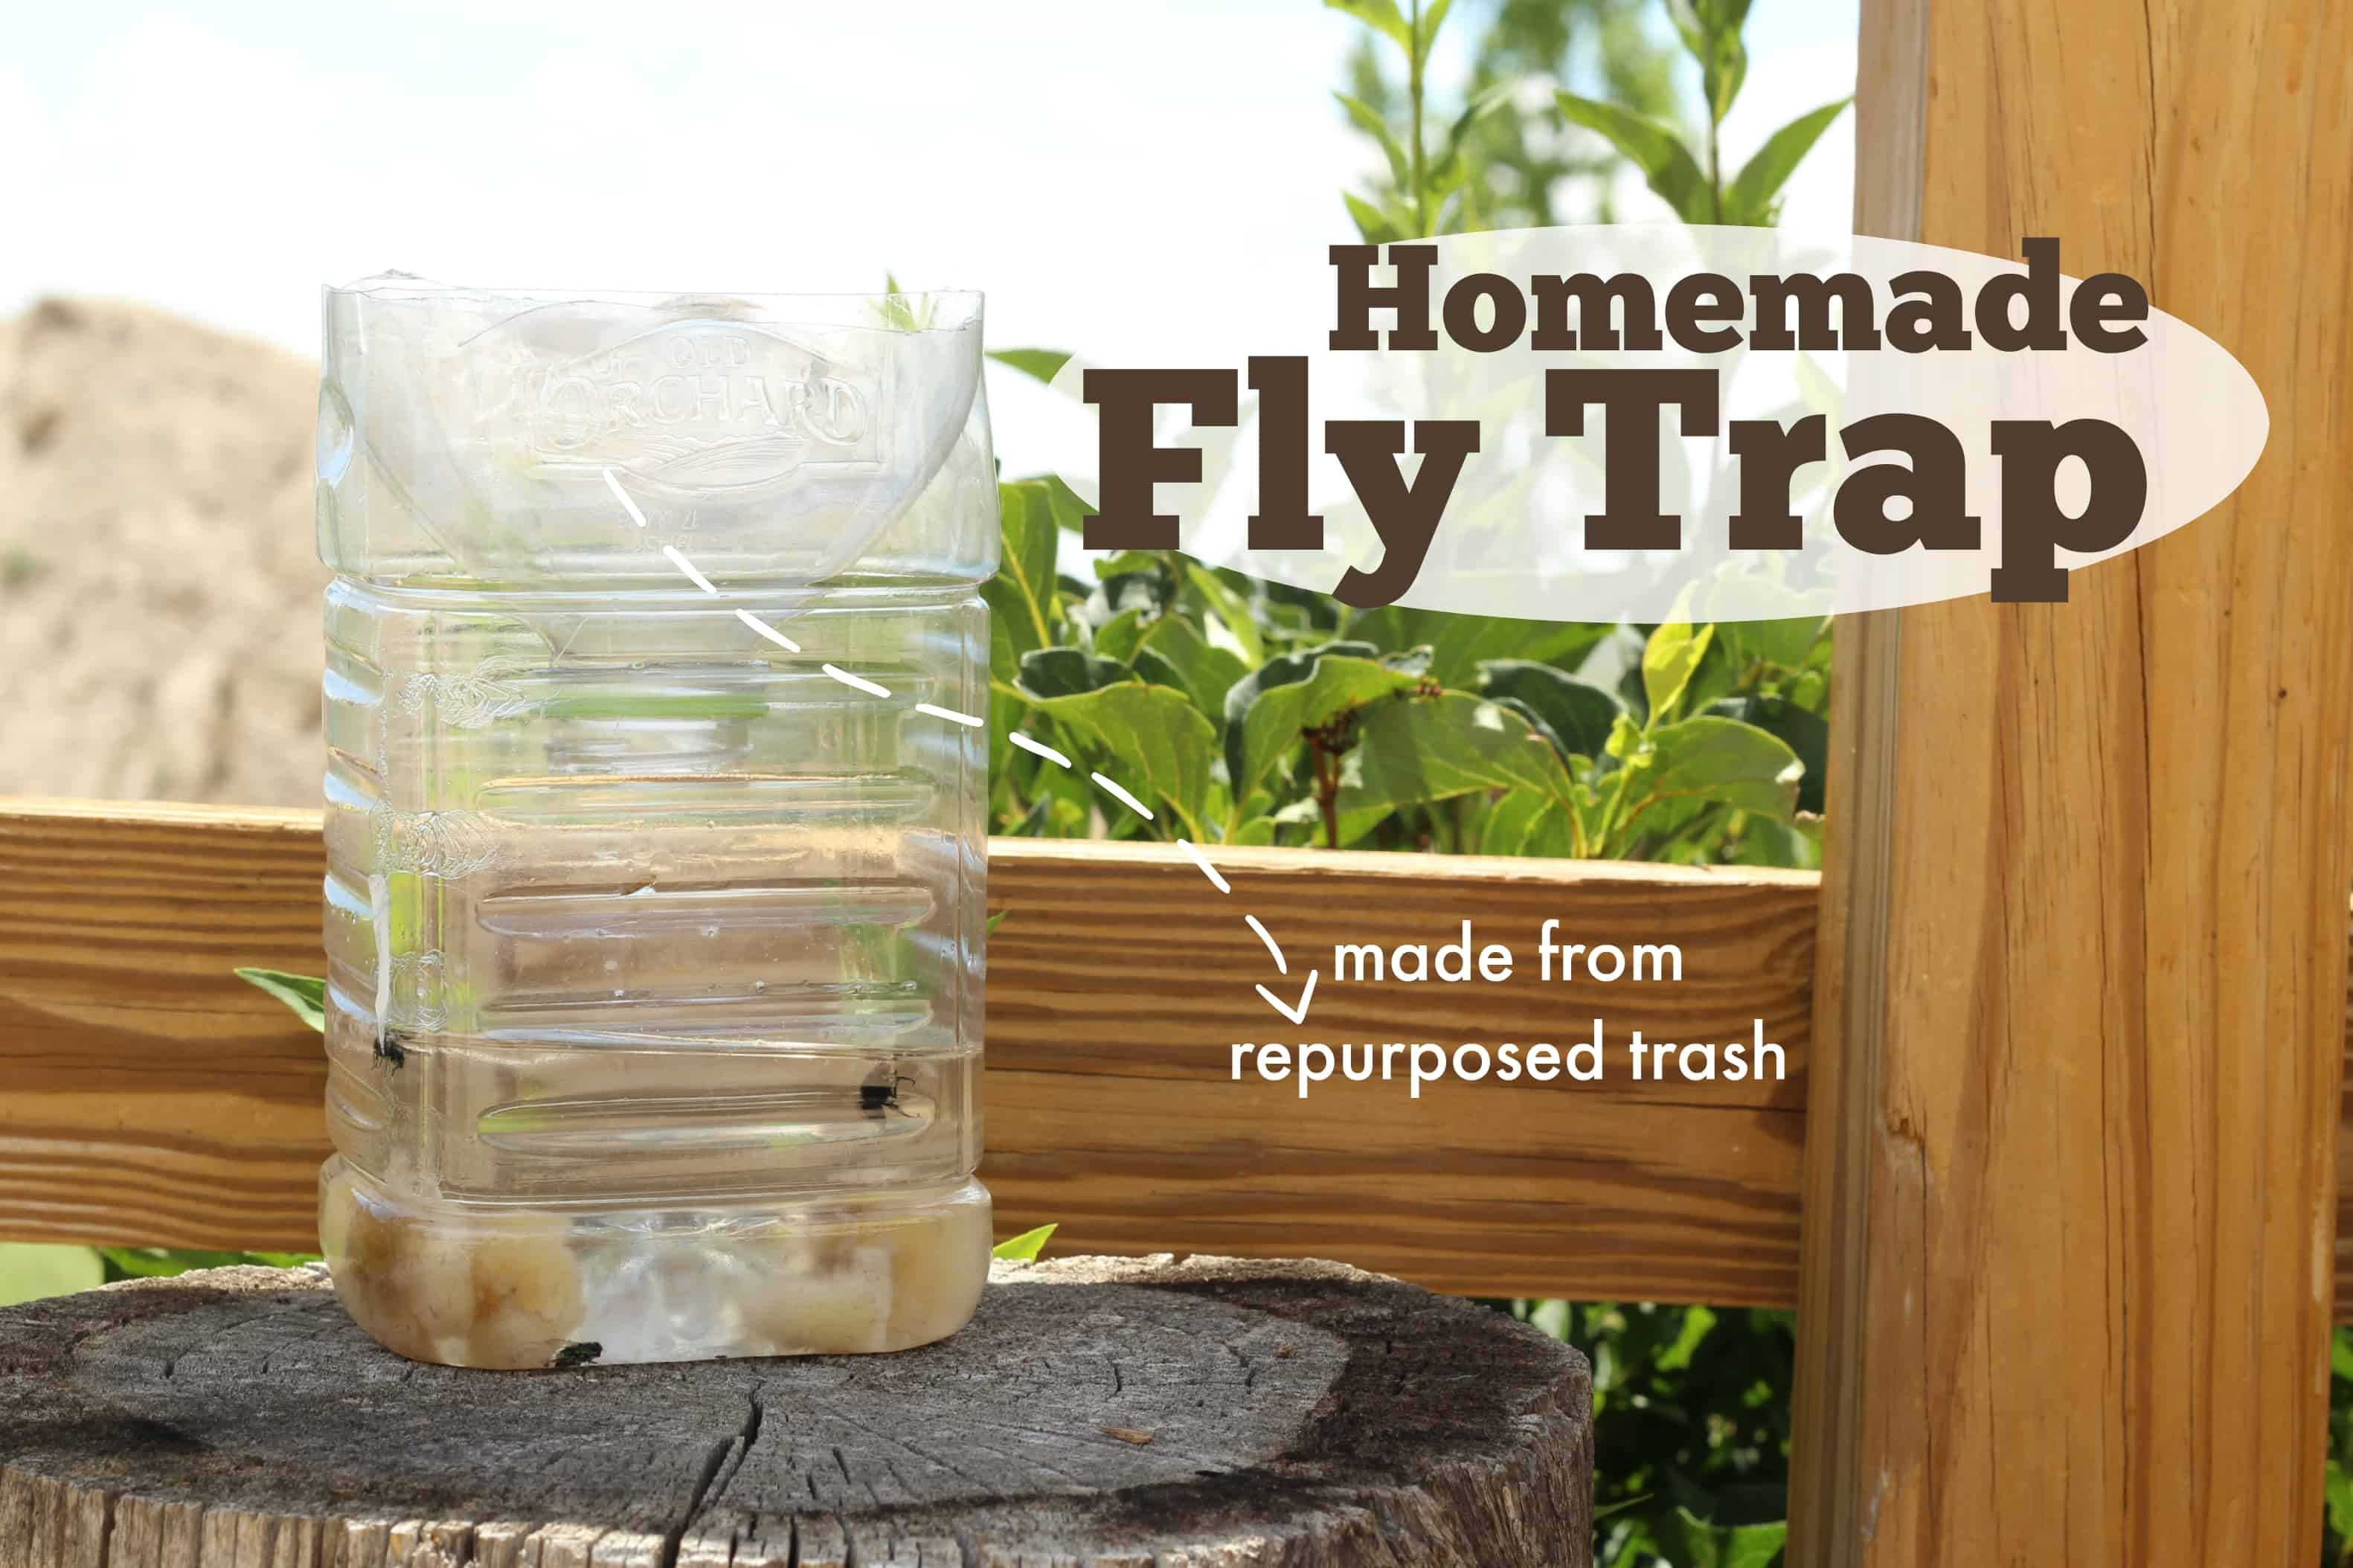 homemade fly trap